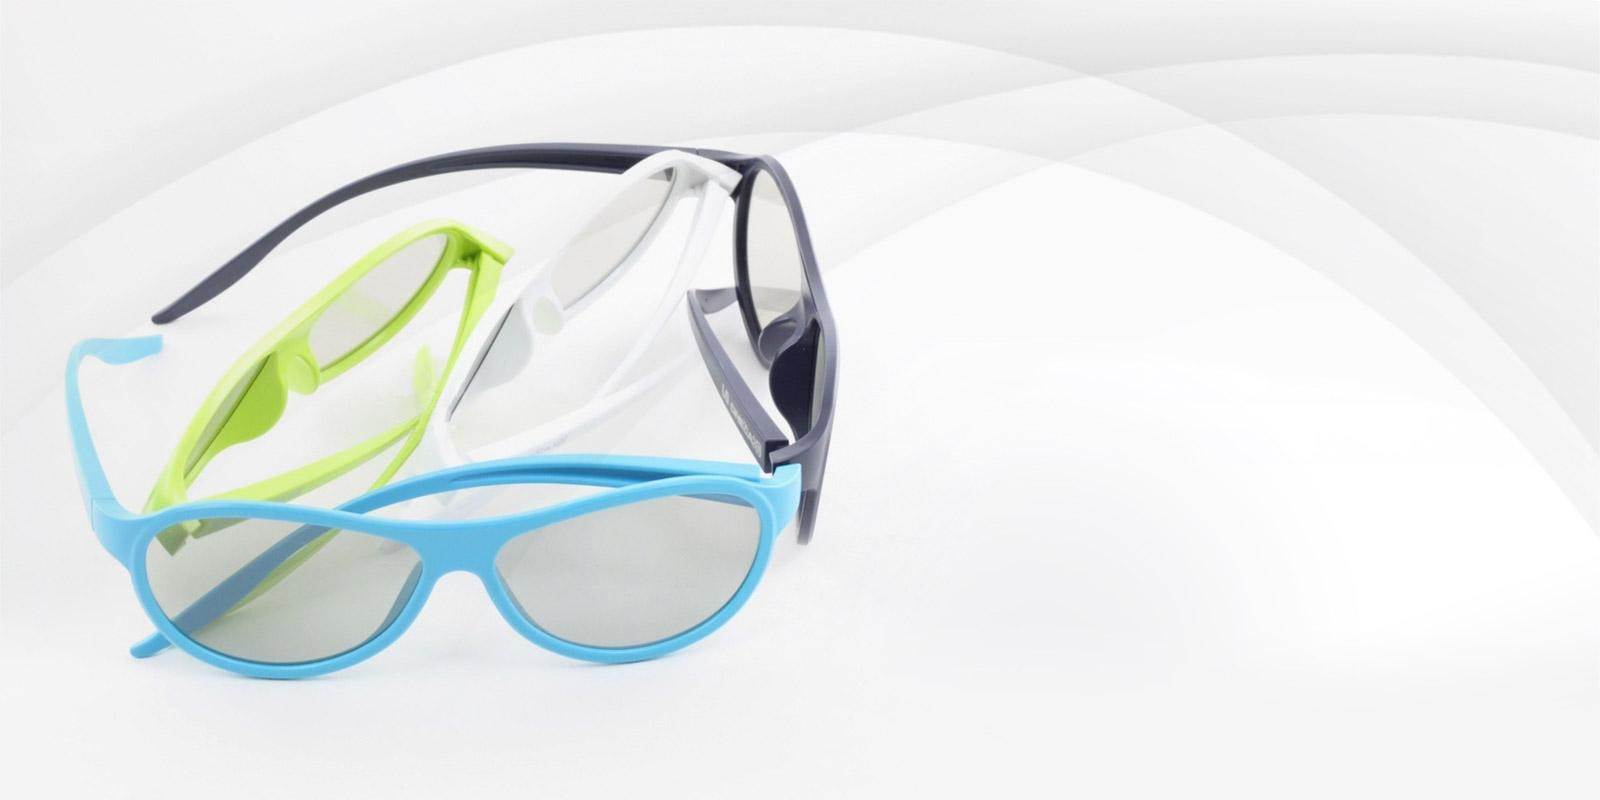 A close-up view of a number of pairs of LG 3D glasses in an assortment of colors.